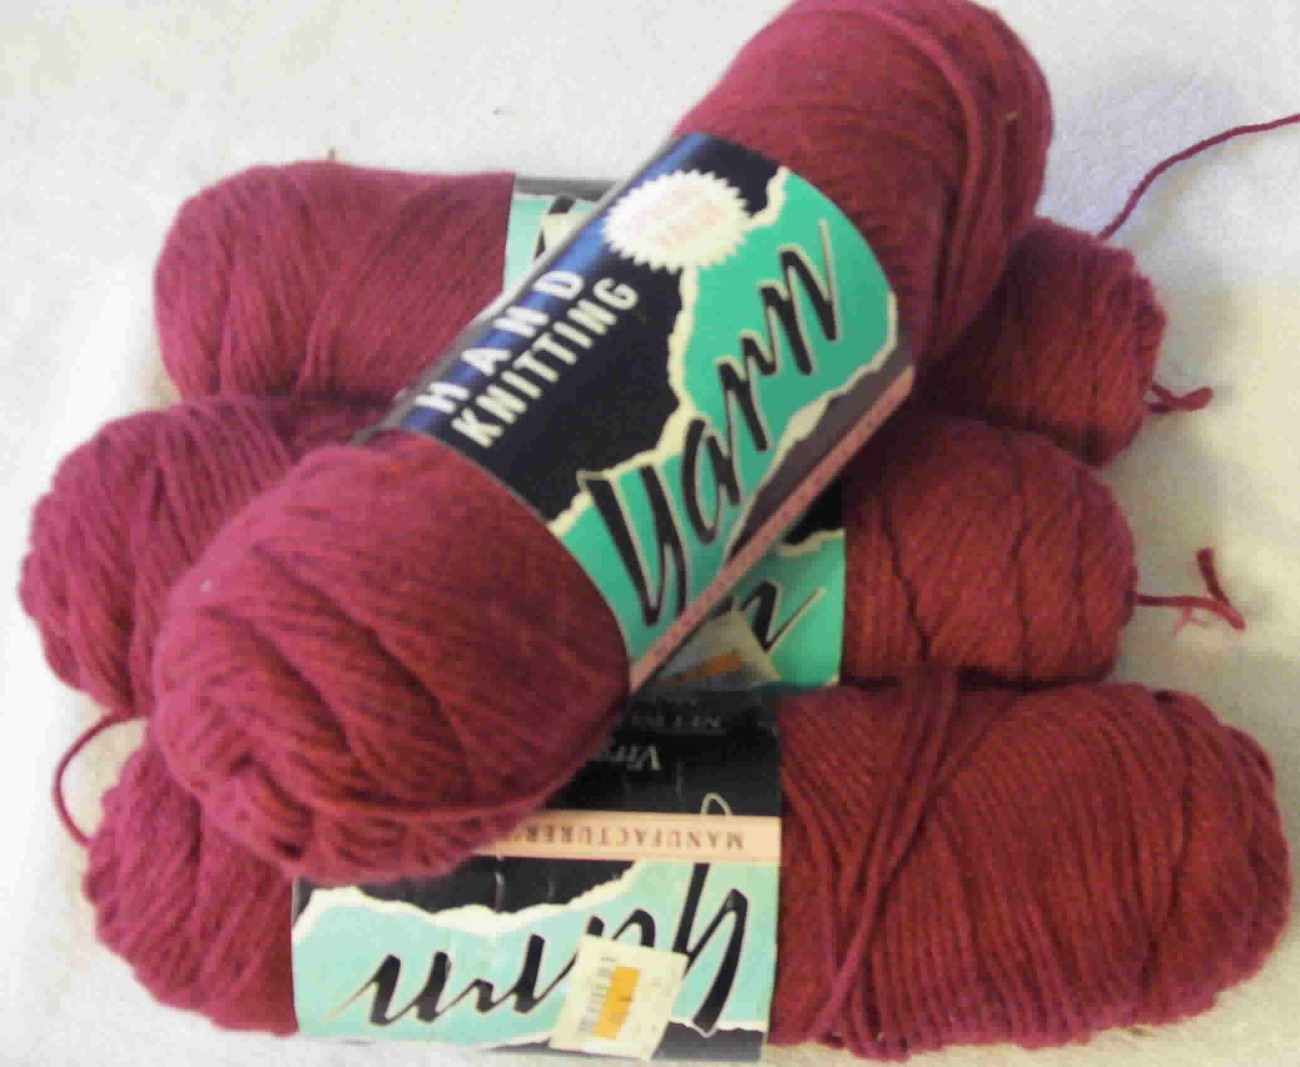 Hand Knitting Yarn Manufacturers Mill Ends 4 skeins - Yarn